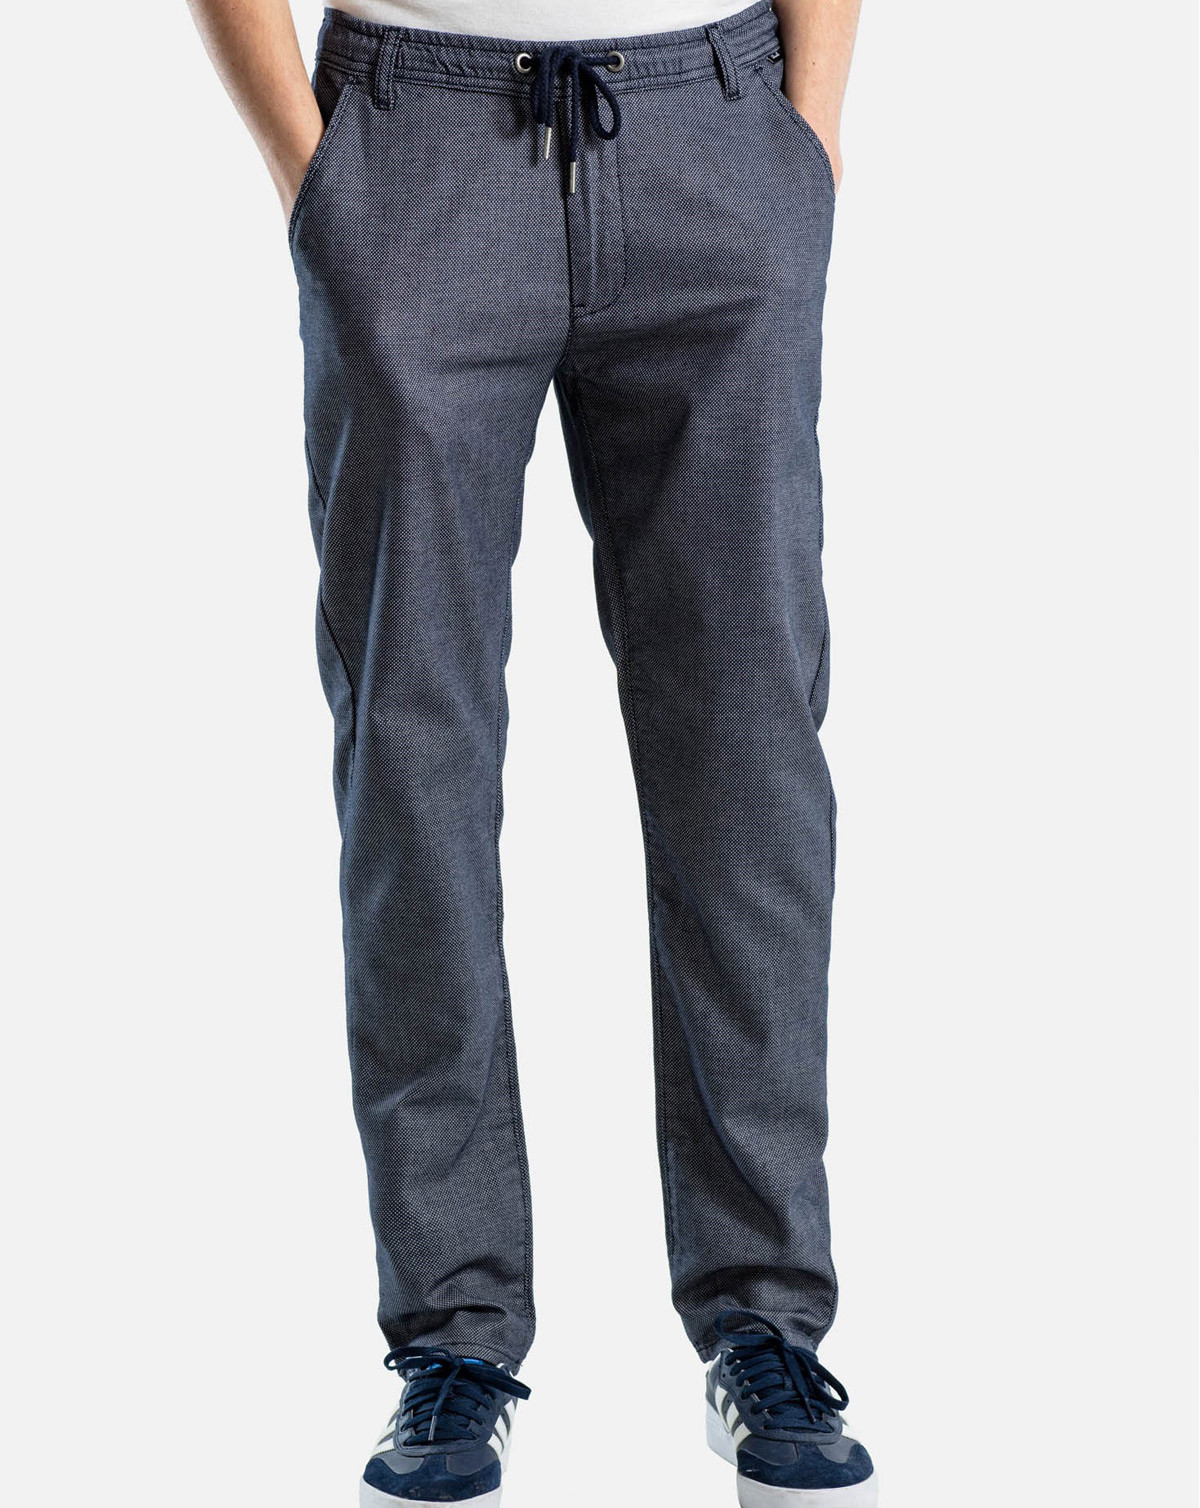 Reell Reflex Easy Superior Chino Pant (Navy, W36 / L34)